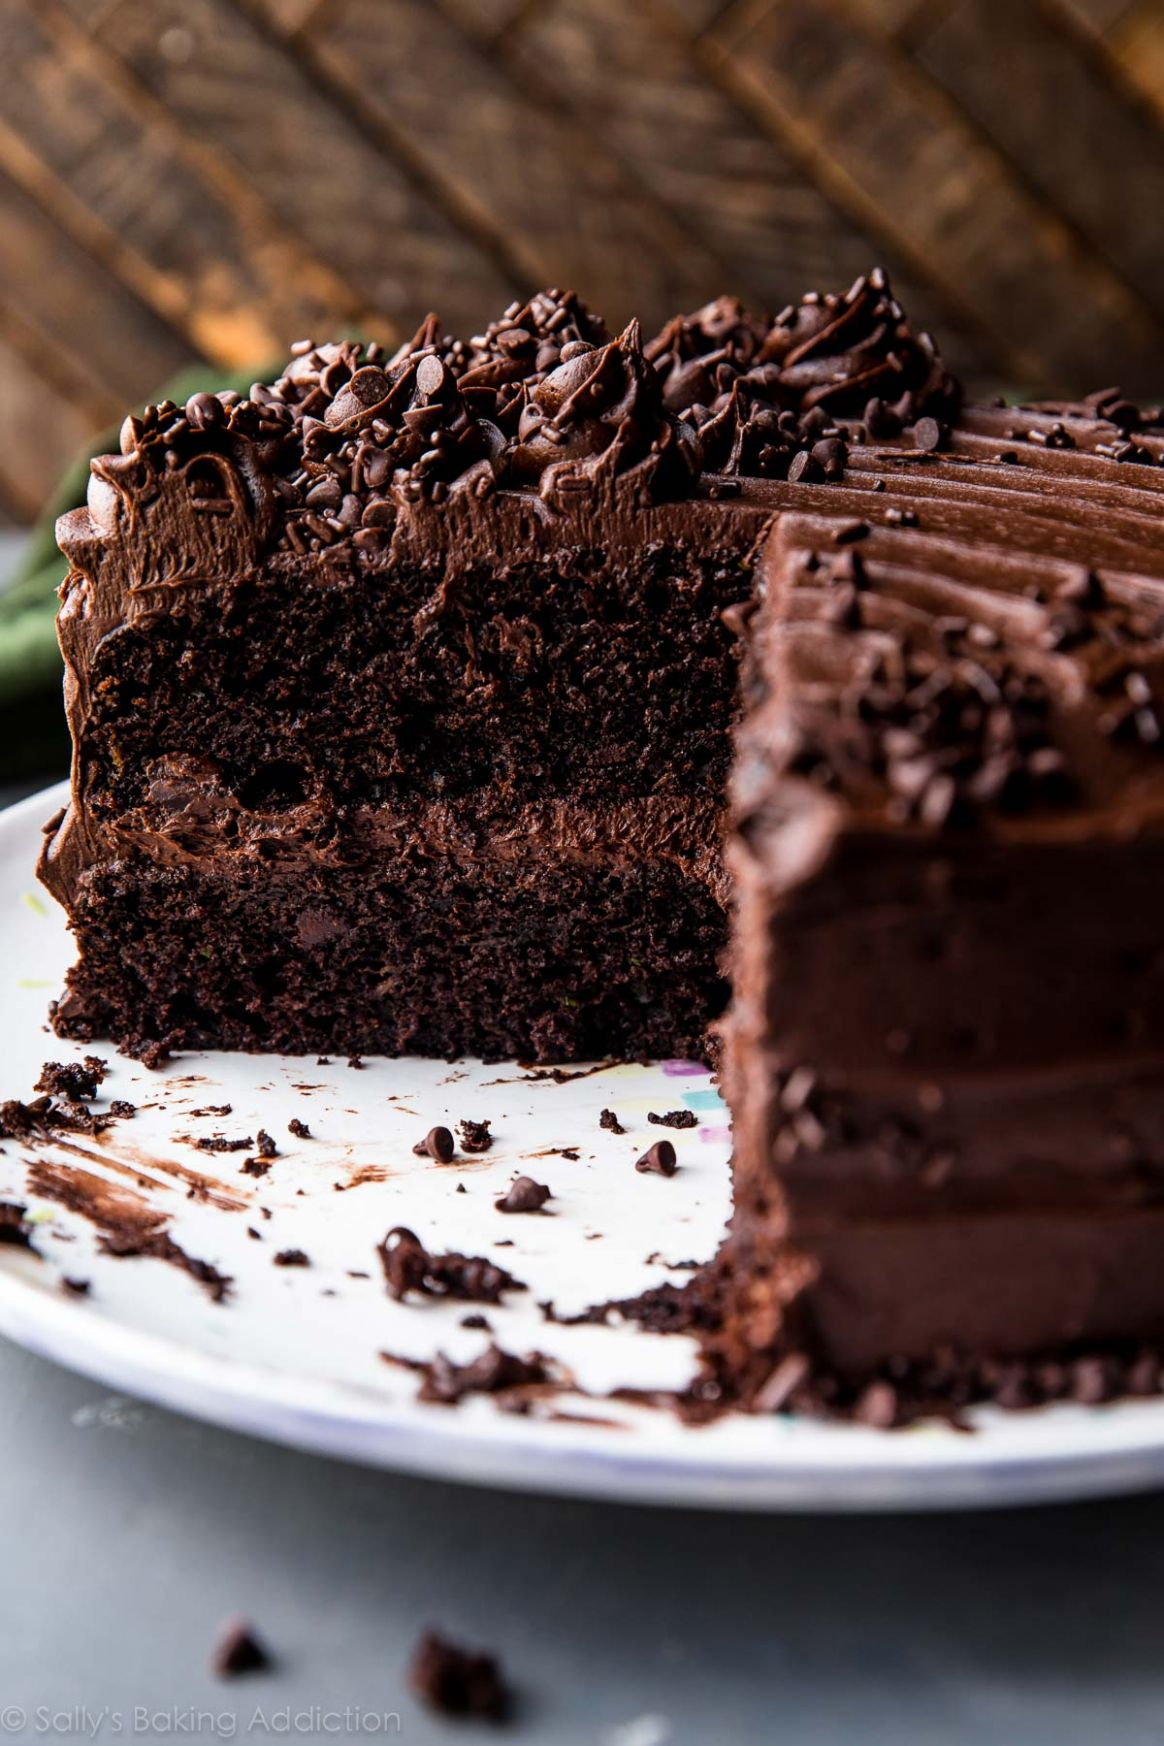 Chocolate Zucchini Cake | Sally's Baking Addiction